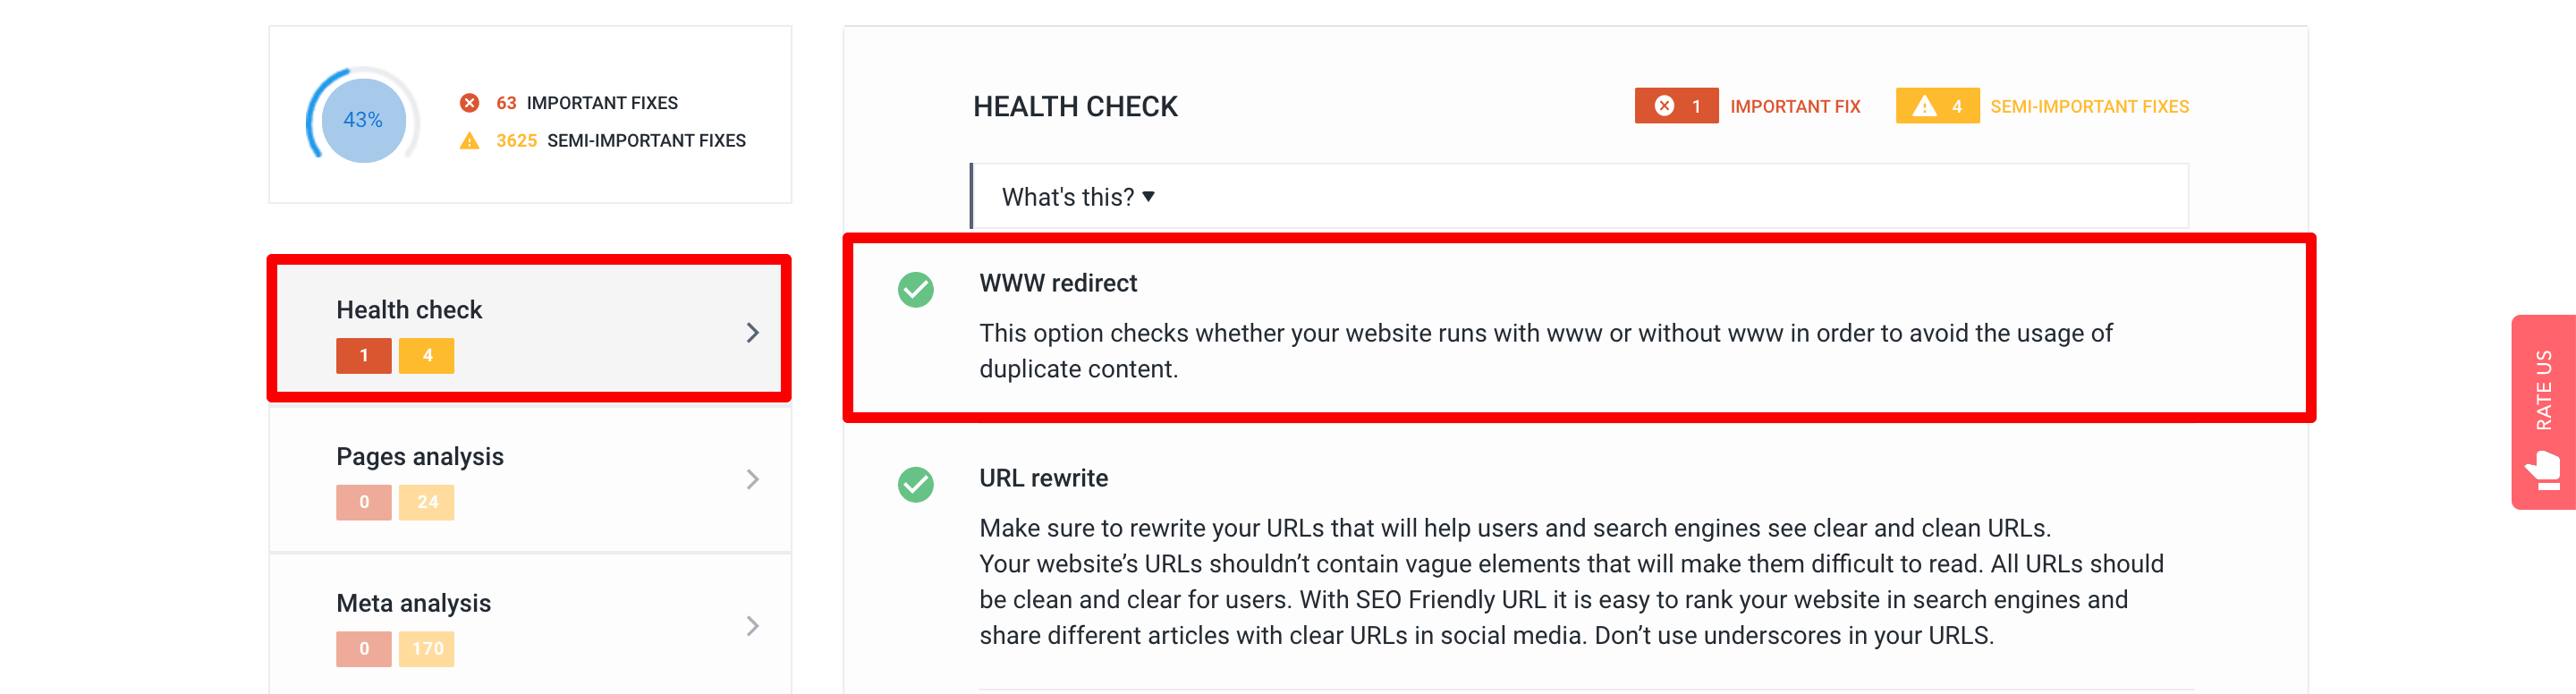 www redirect in Website Audit